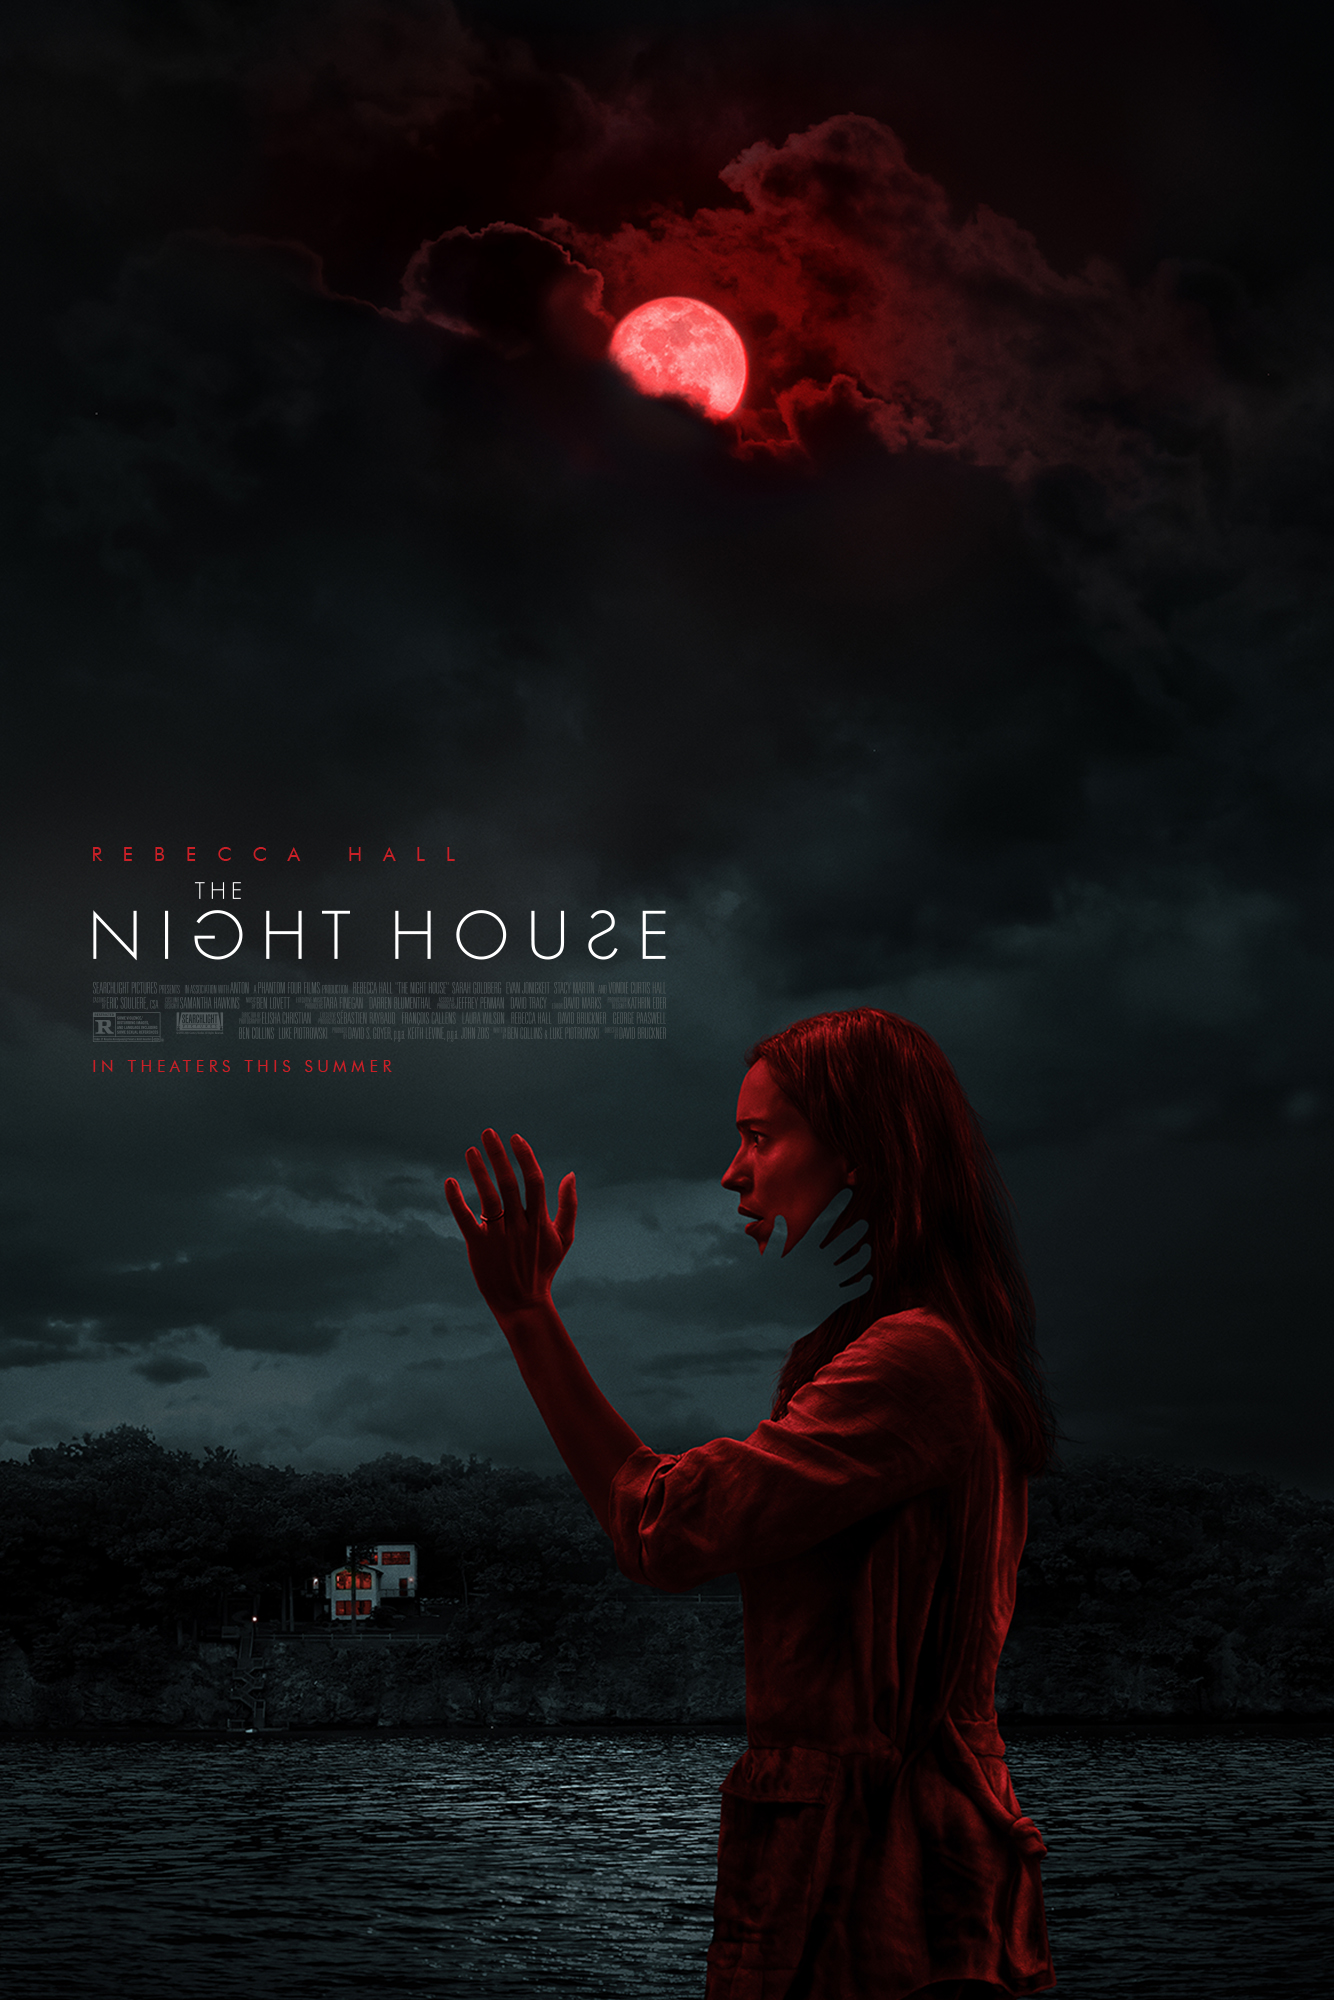 Movie poster image for THE NIGHT HOUSE